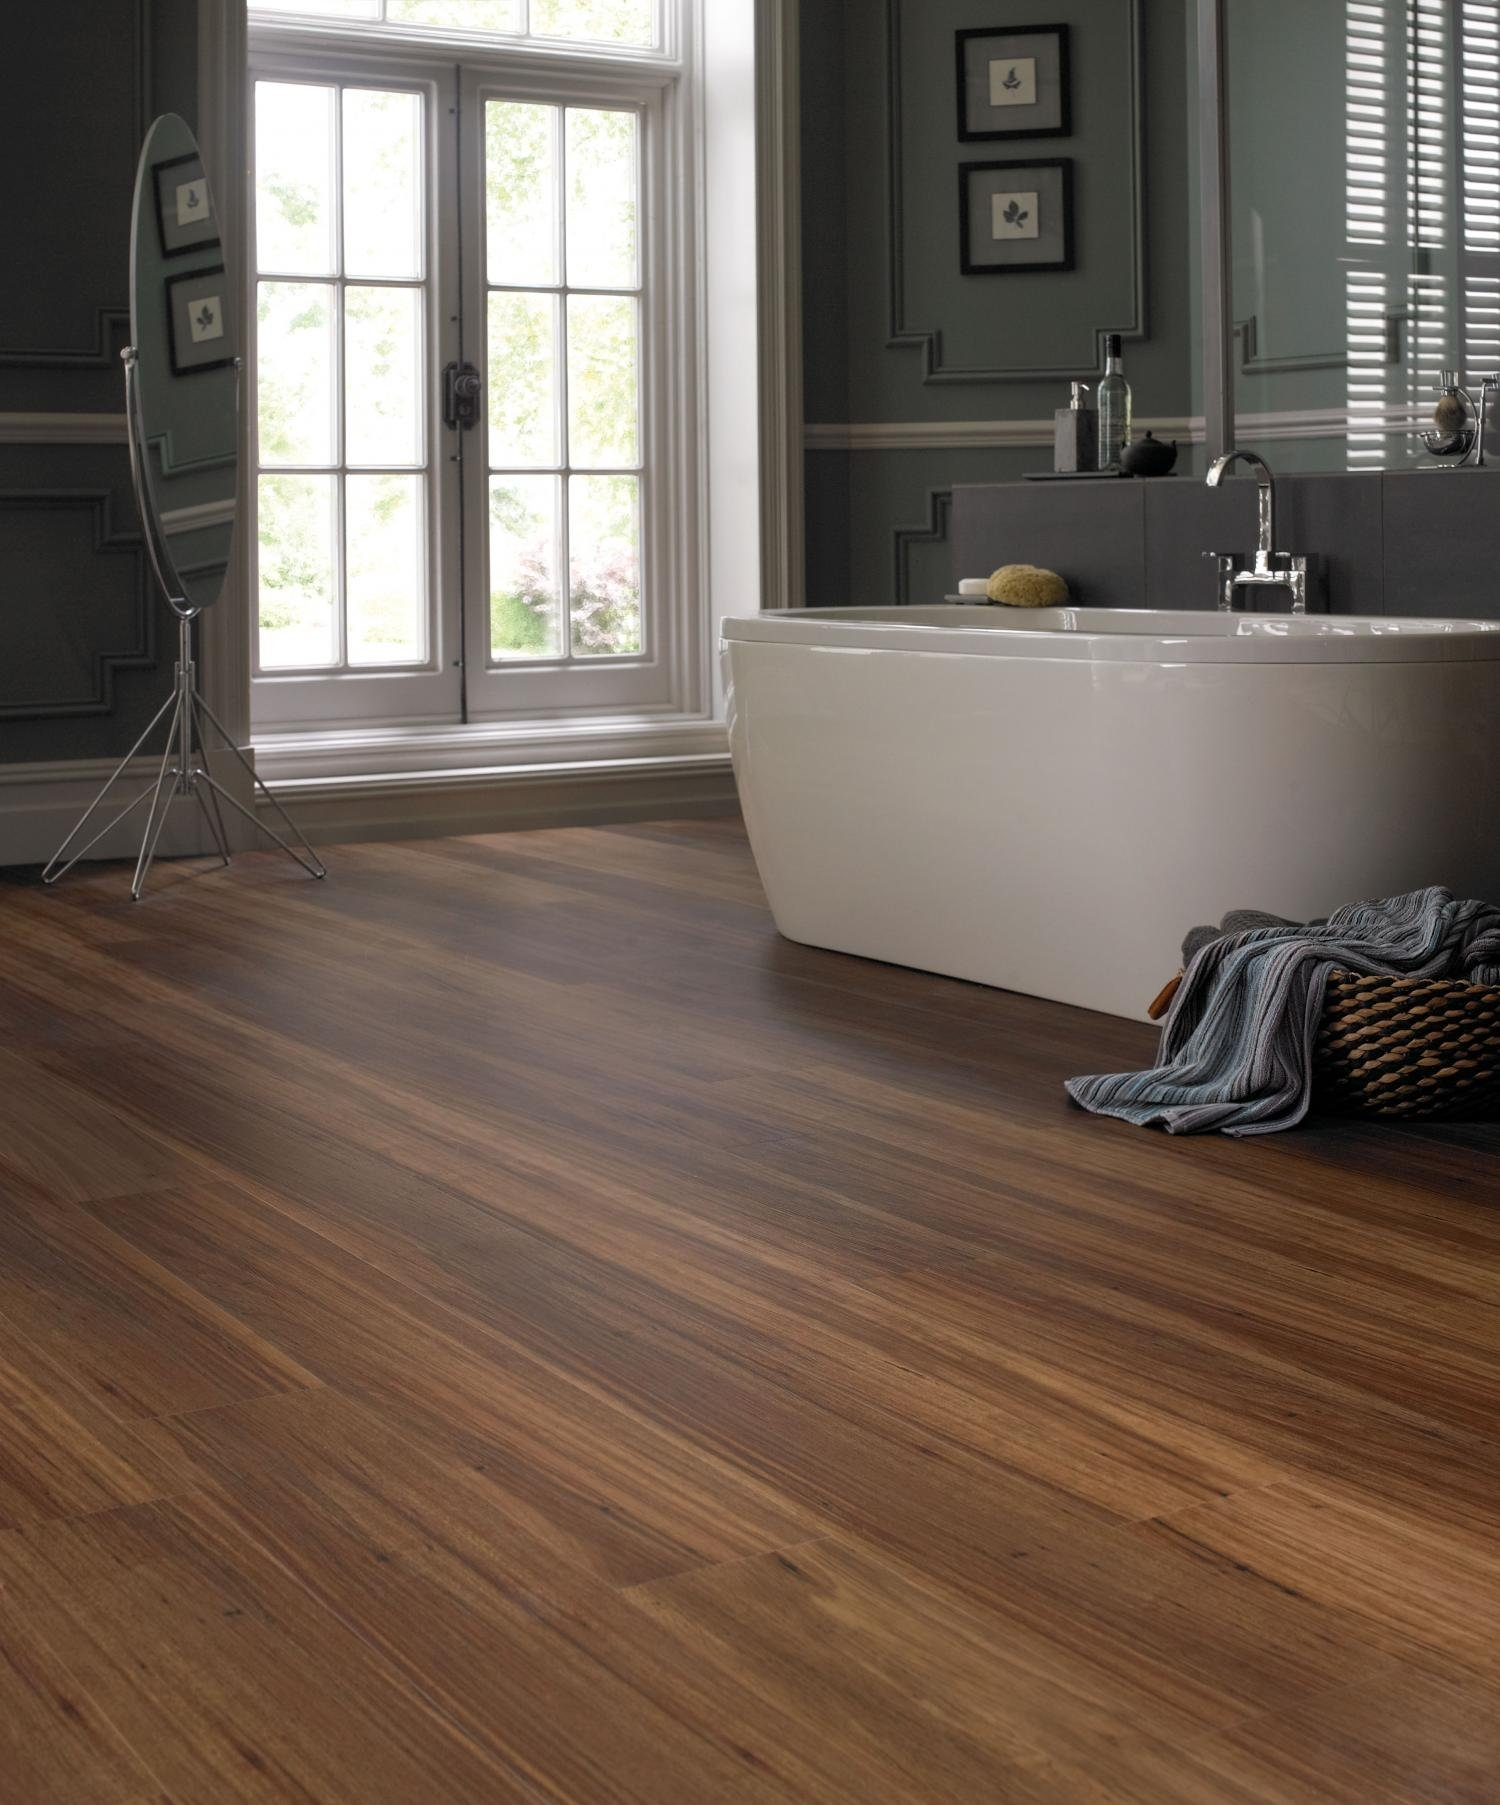 Permalink to Is Laminate Wood Flooring Good For Bathrooms